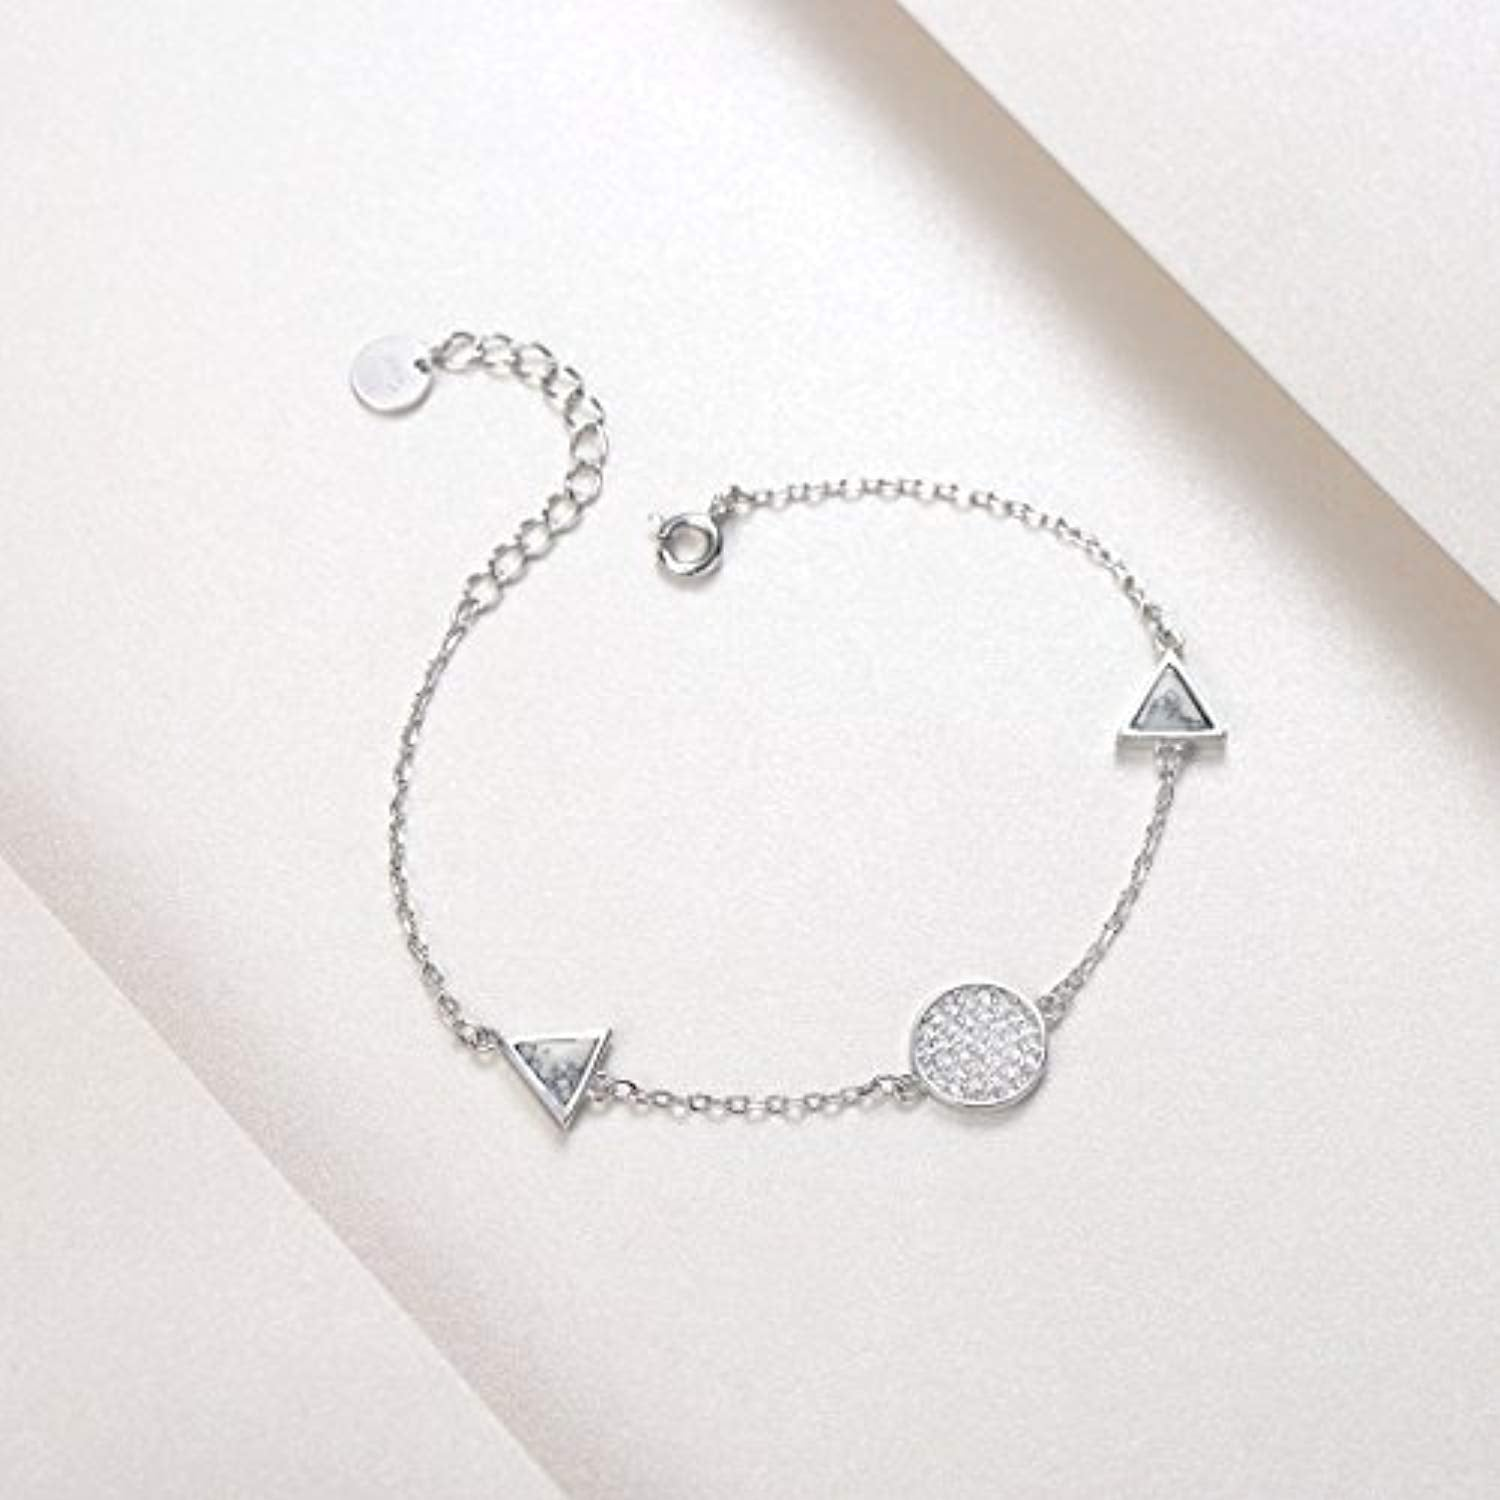 925 Sterling Silver Heart Charm Bracelet Setting Cubic Zirconia CZ Jewelry for Women